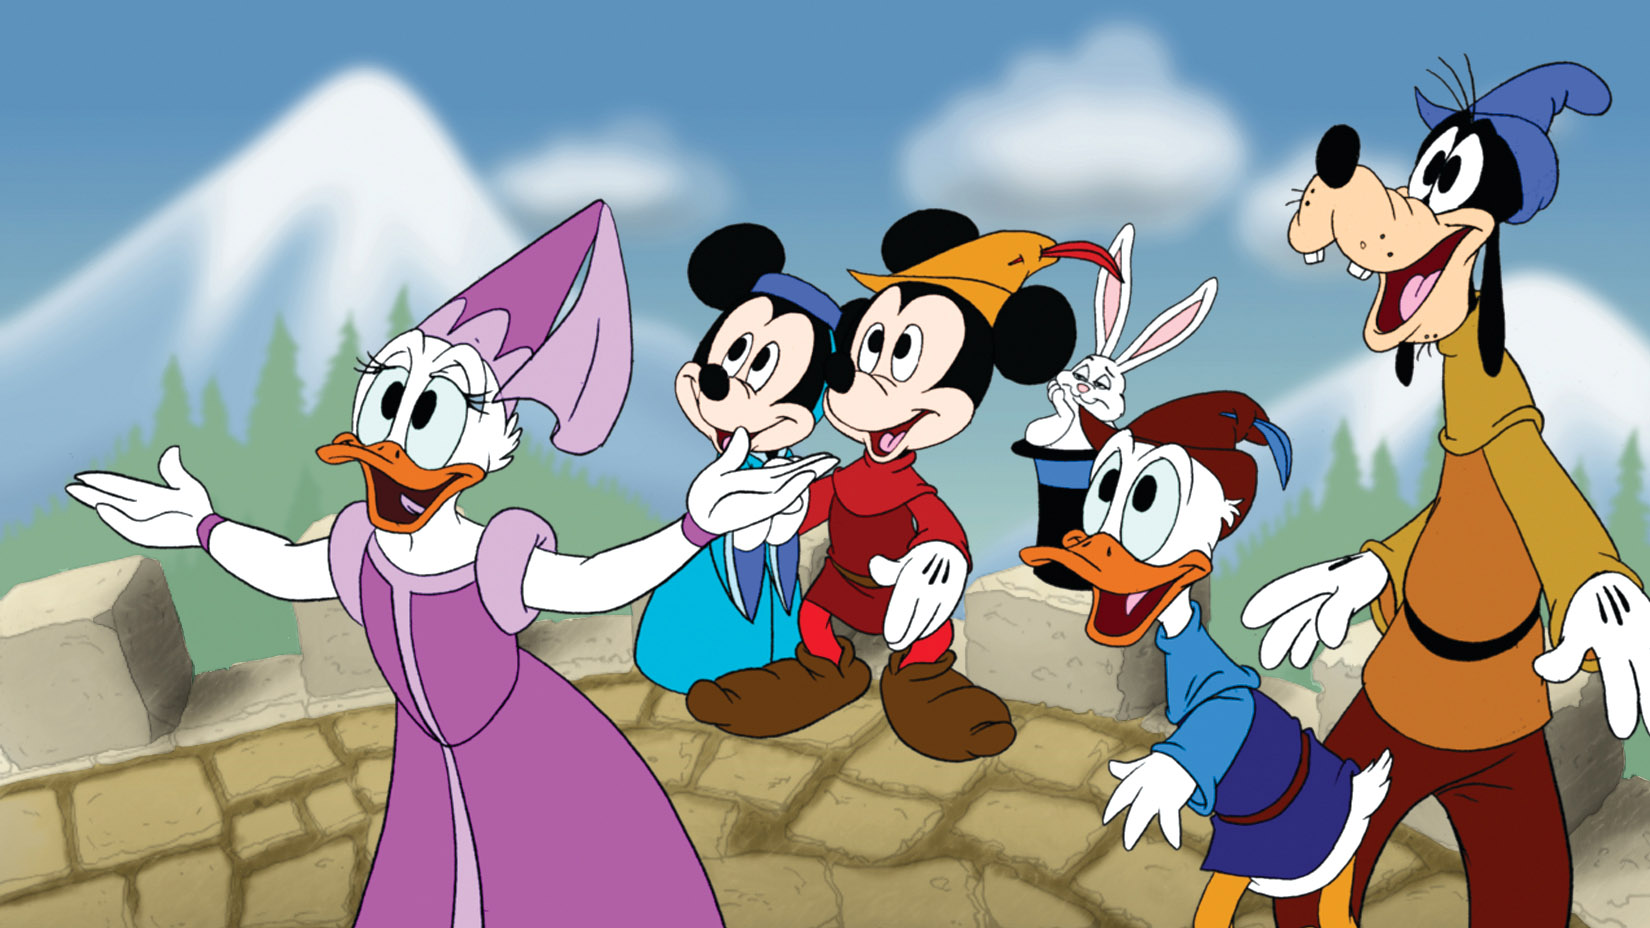 Help Mickey's friends solve the mysterious enchantment in Typelandia.